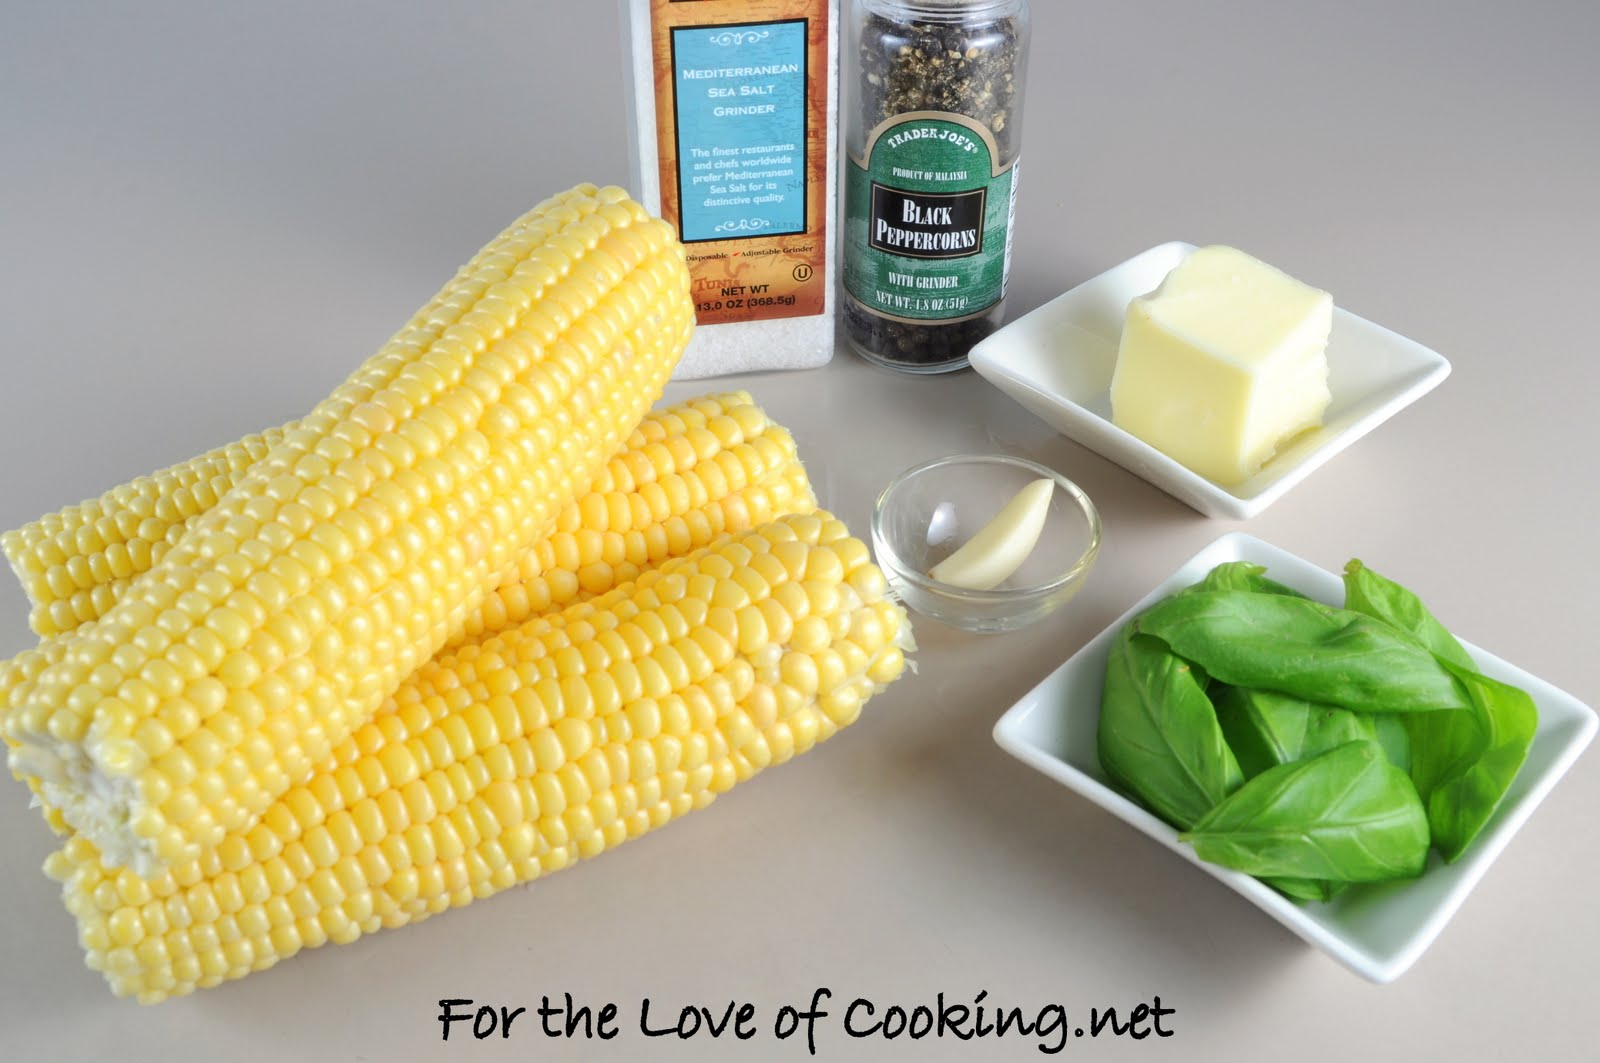 Corn on the Cob with Basil Garlic Butter | For the Love of Cooking